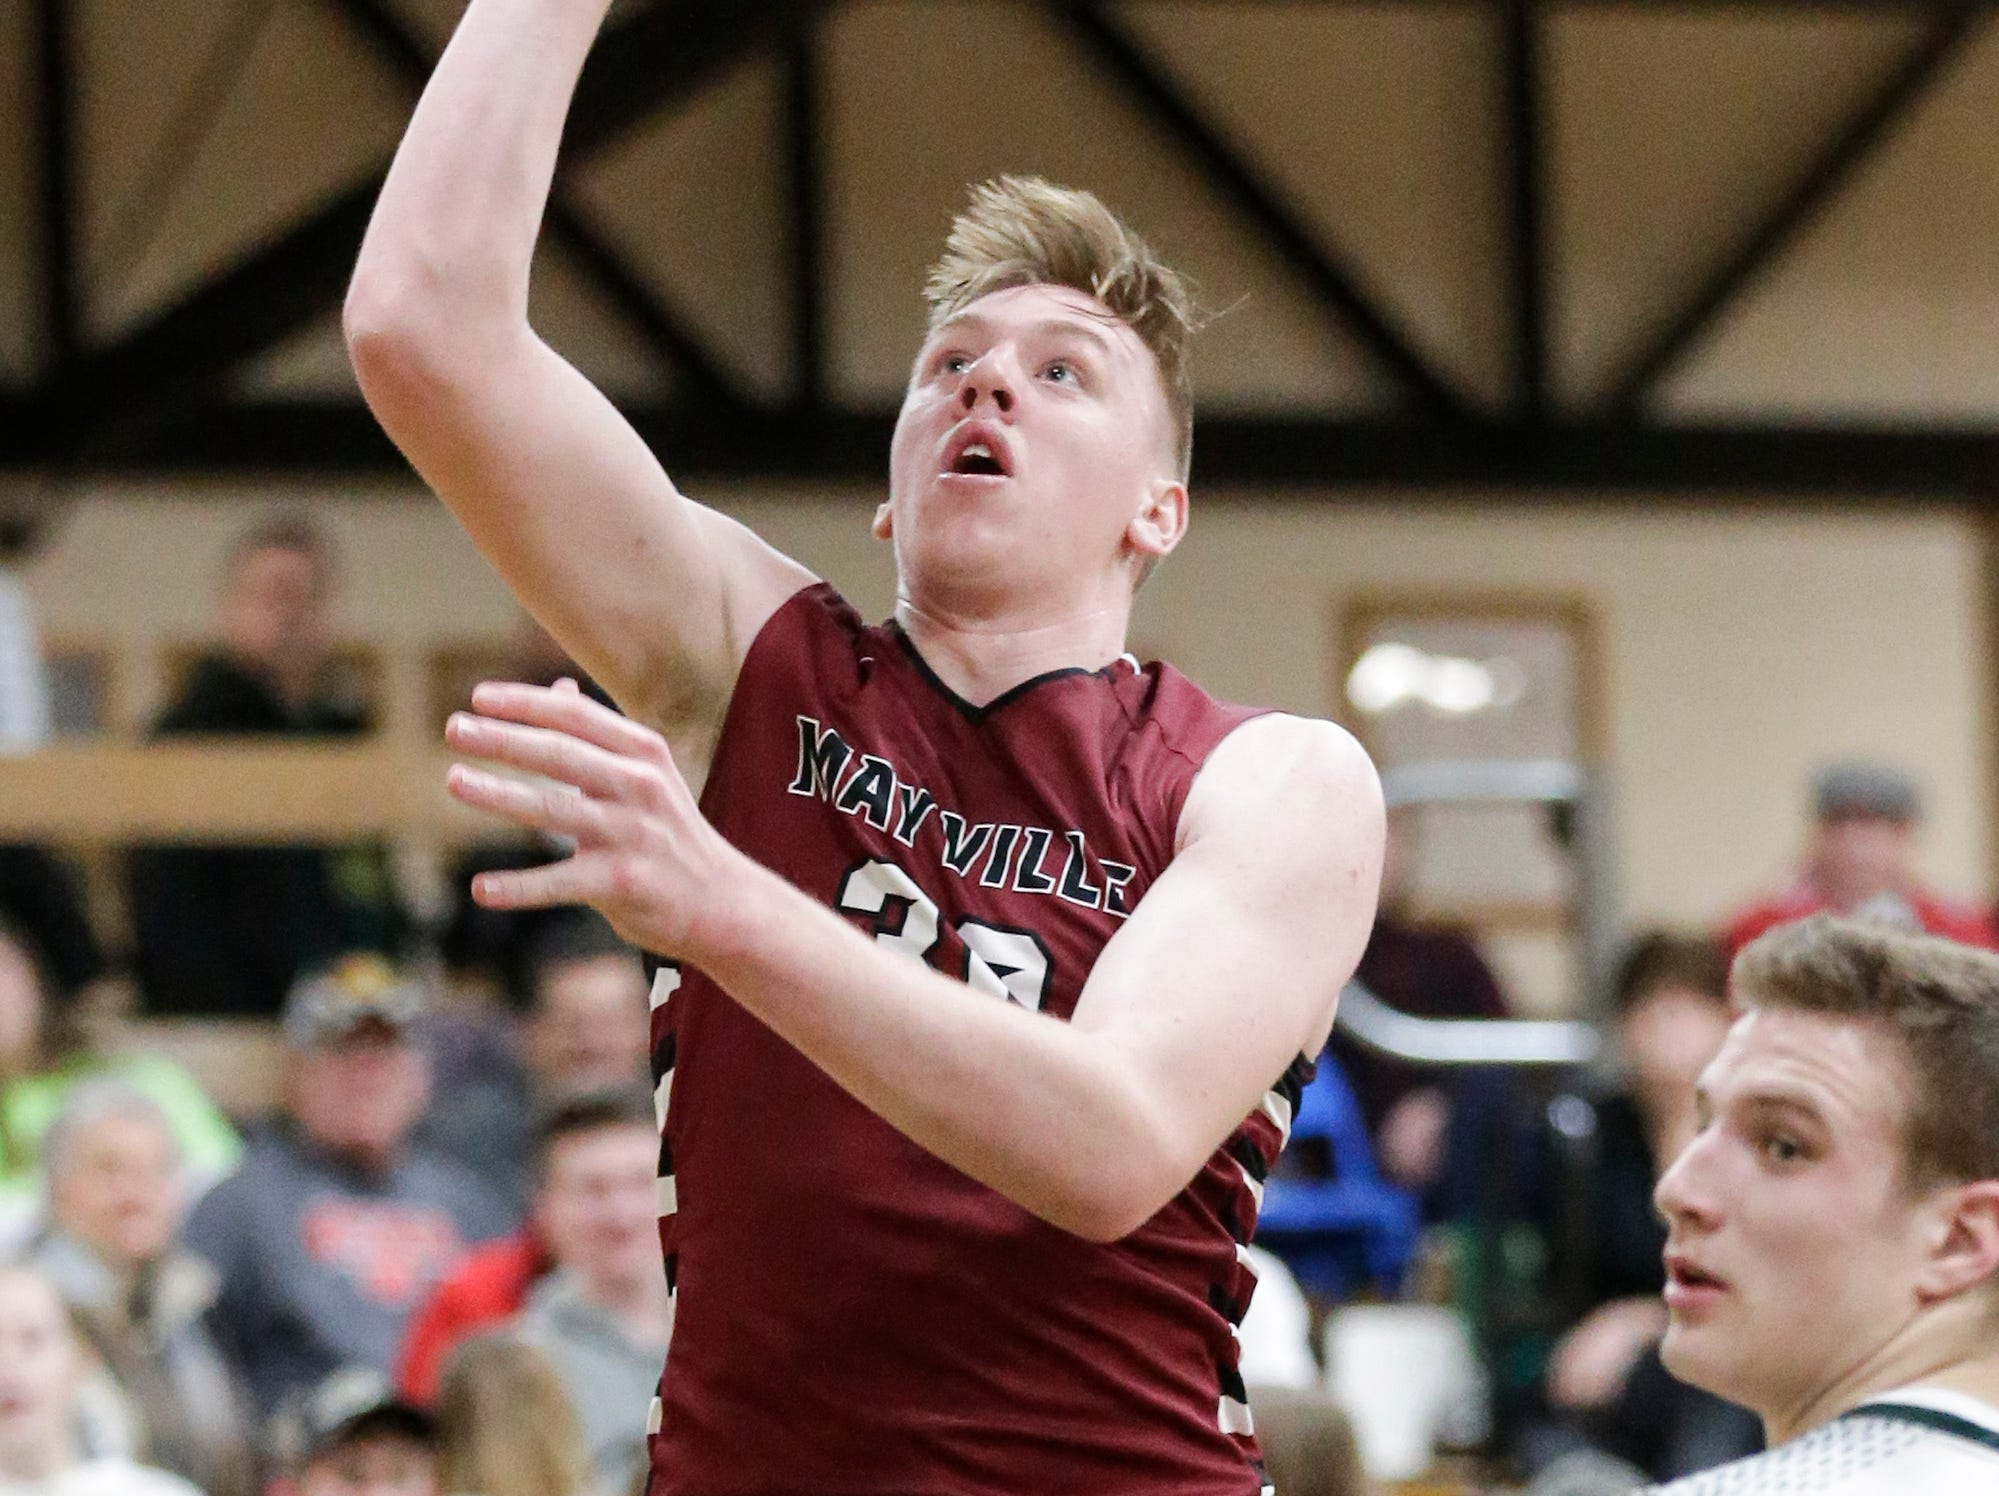 Mayville High School boys basketball's Logan Arroyo goes up for a shot against Laconia High School during their game Friday, January 25, 2019 in Rosendale. Laconia won the game 80-54. Doug Raflik/USA TODAY NETWORK-Wisconsin